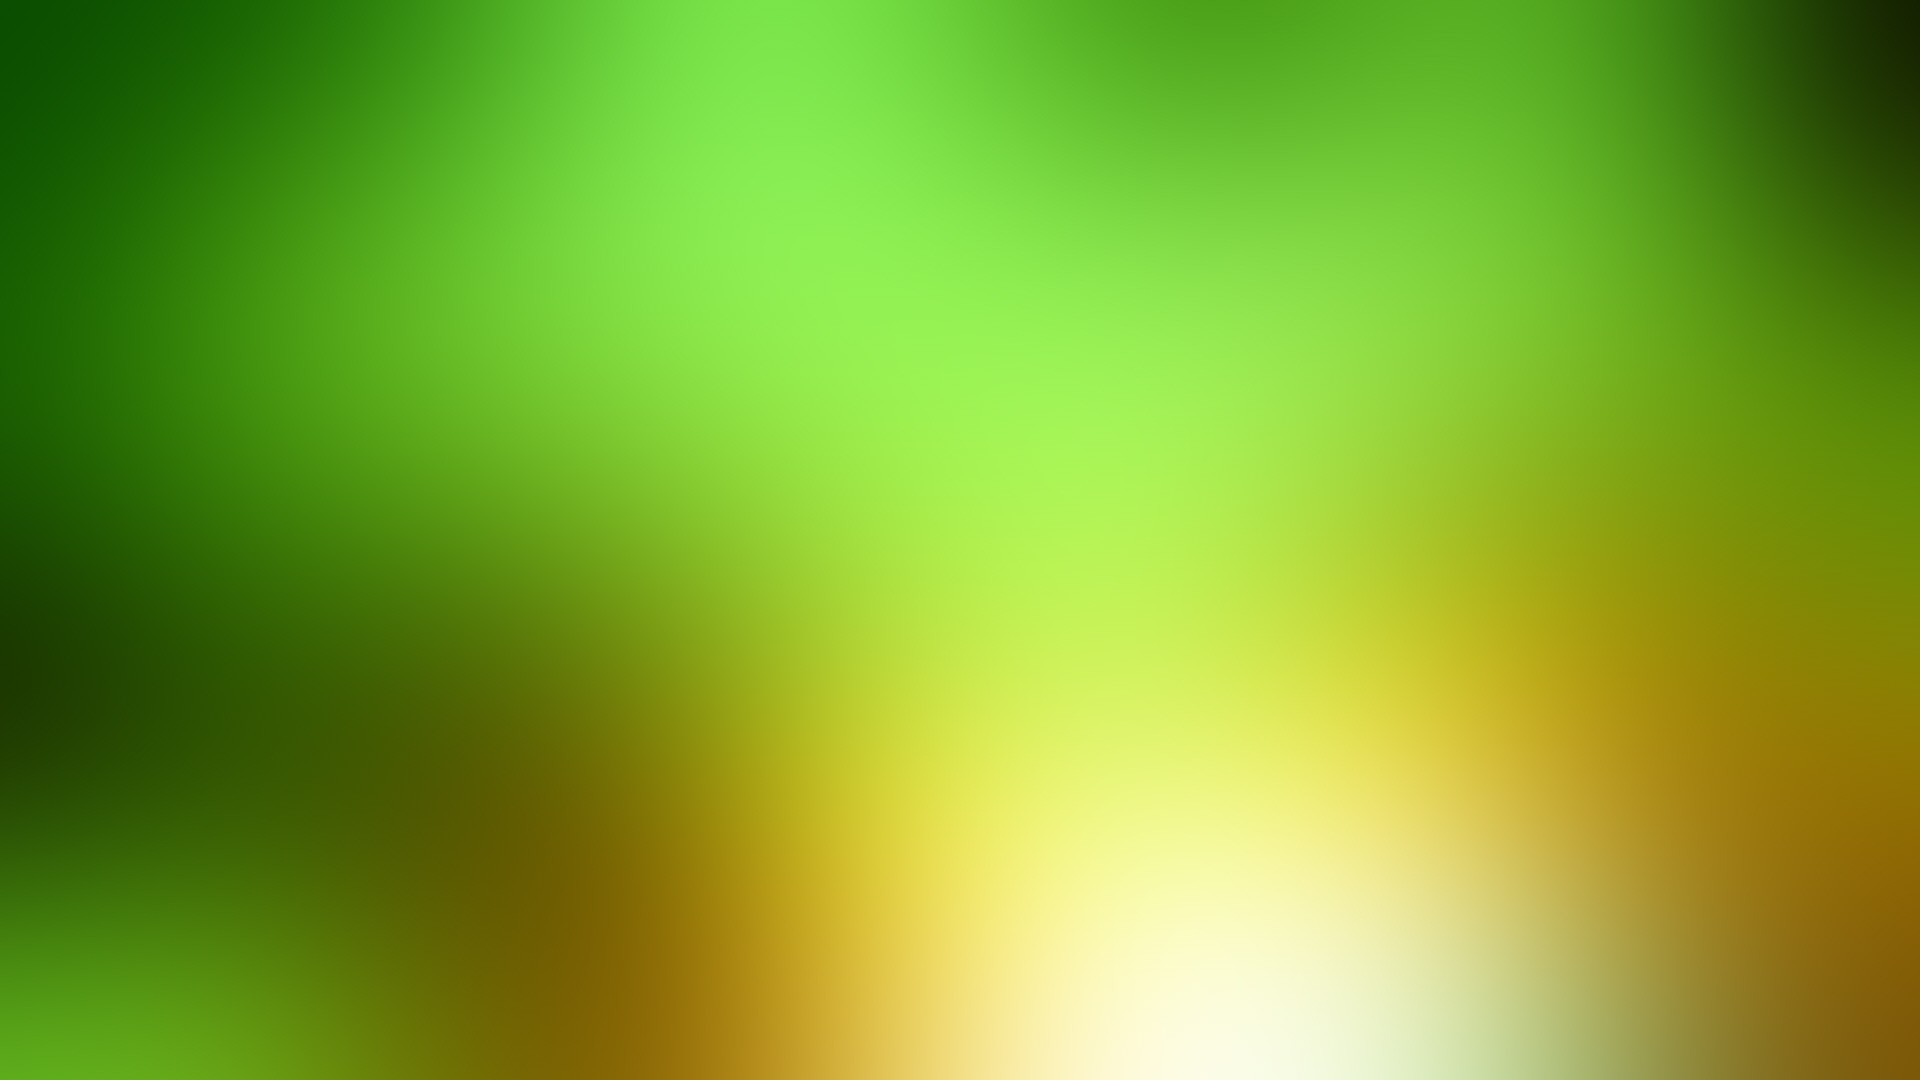 background hd 1920x1080 green